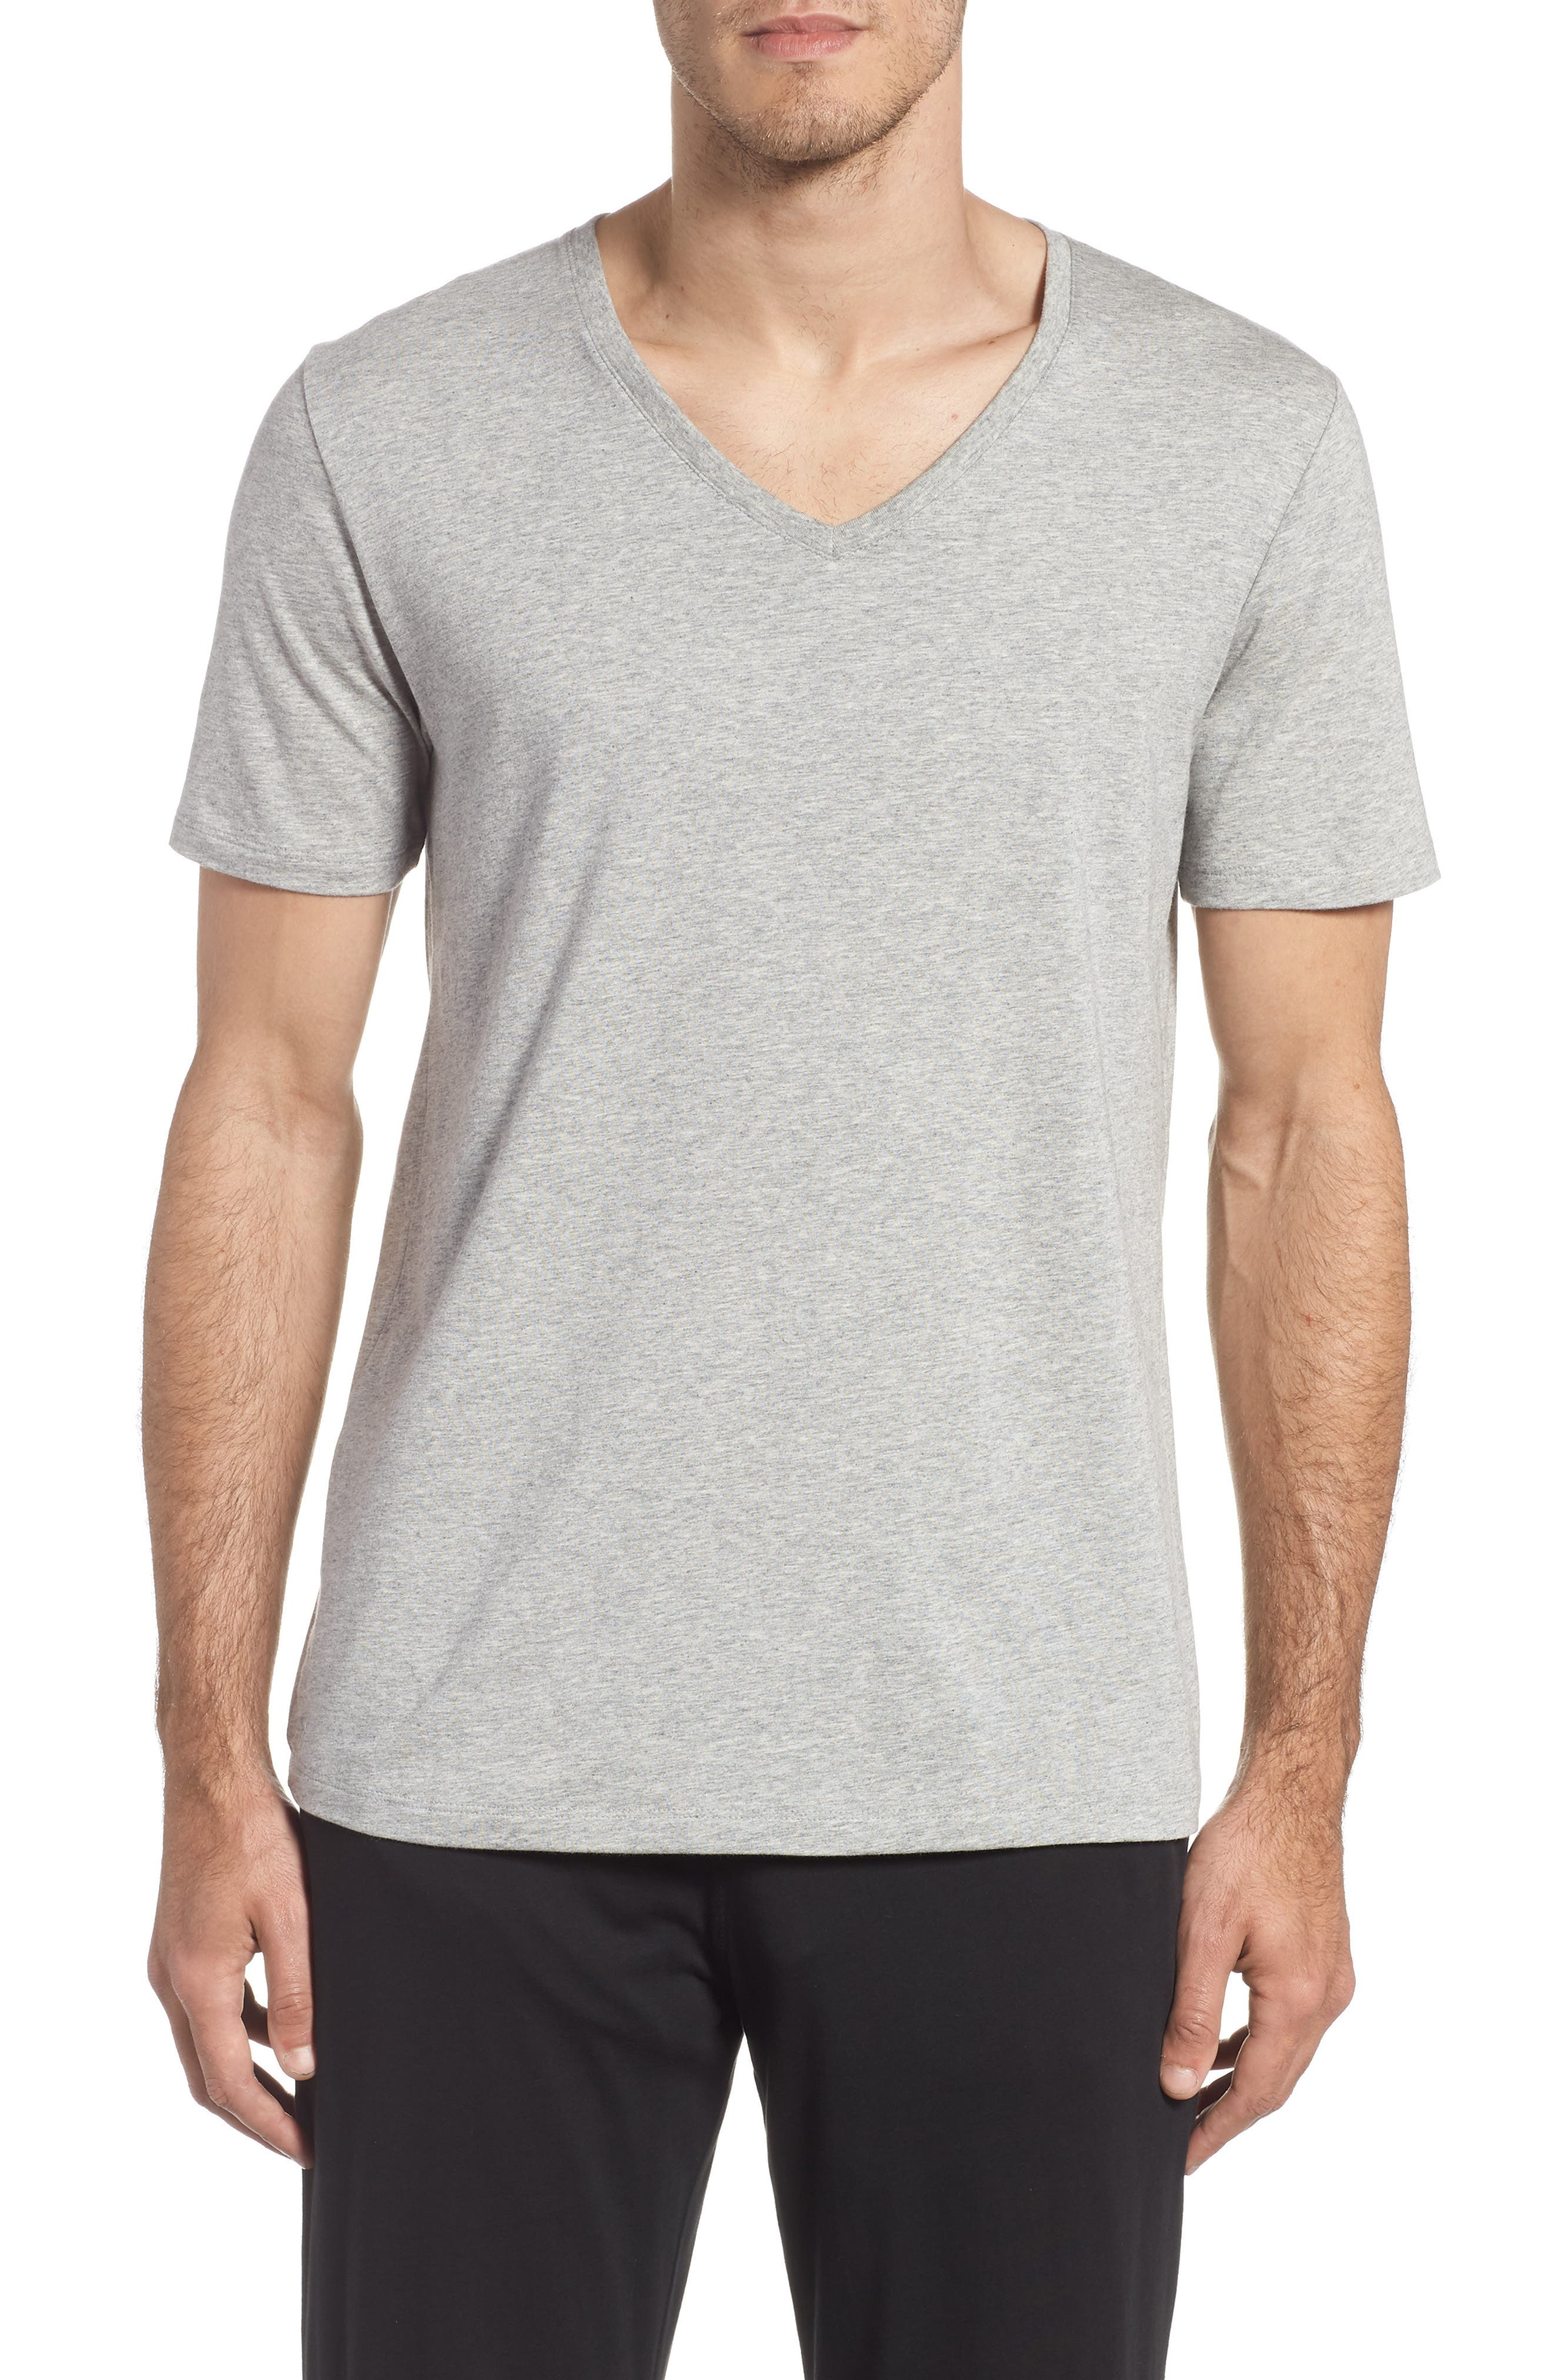 Second Skin V-Neck T-Shirt,                             Main thumbnail 1, color,                             HEATHER GREY